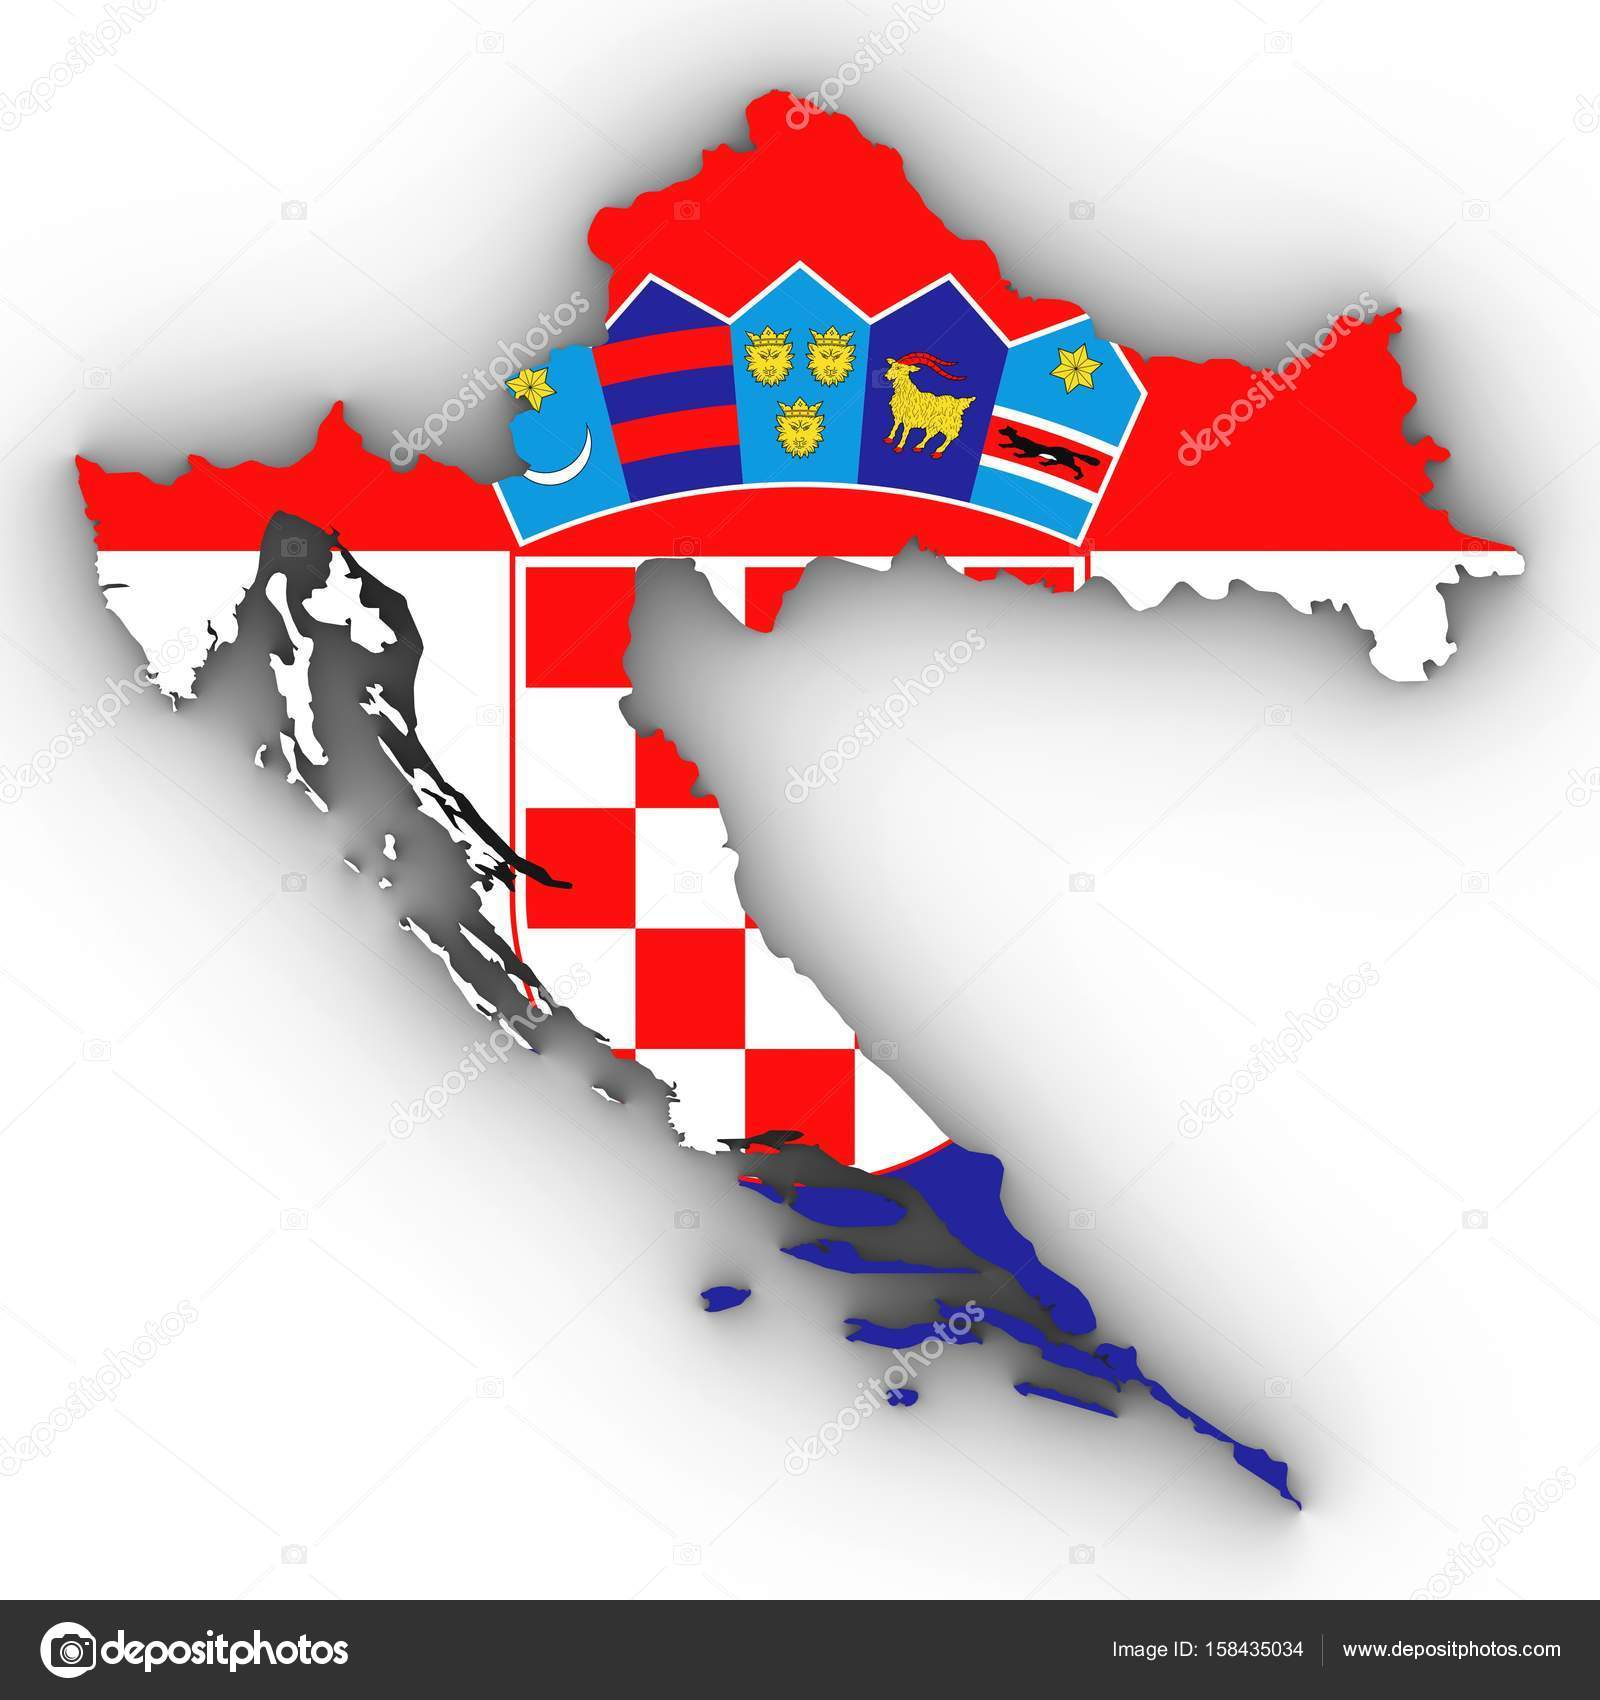 Croatia Map Outline With Croatian Flag On White With Shadows 3d